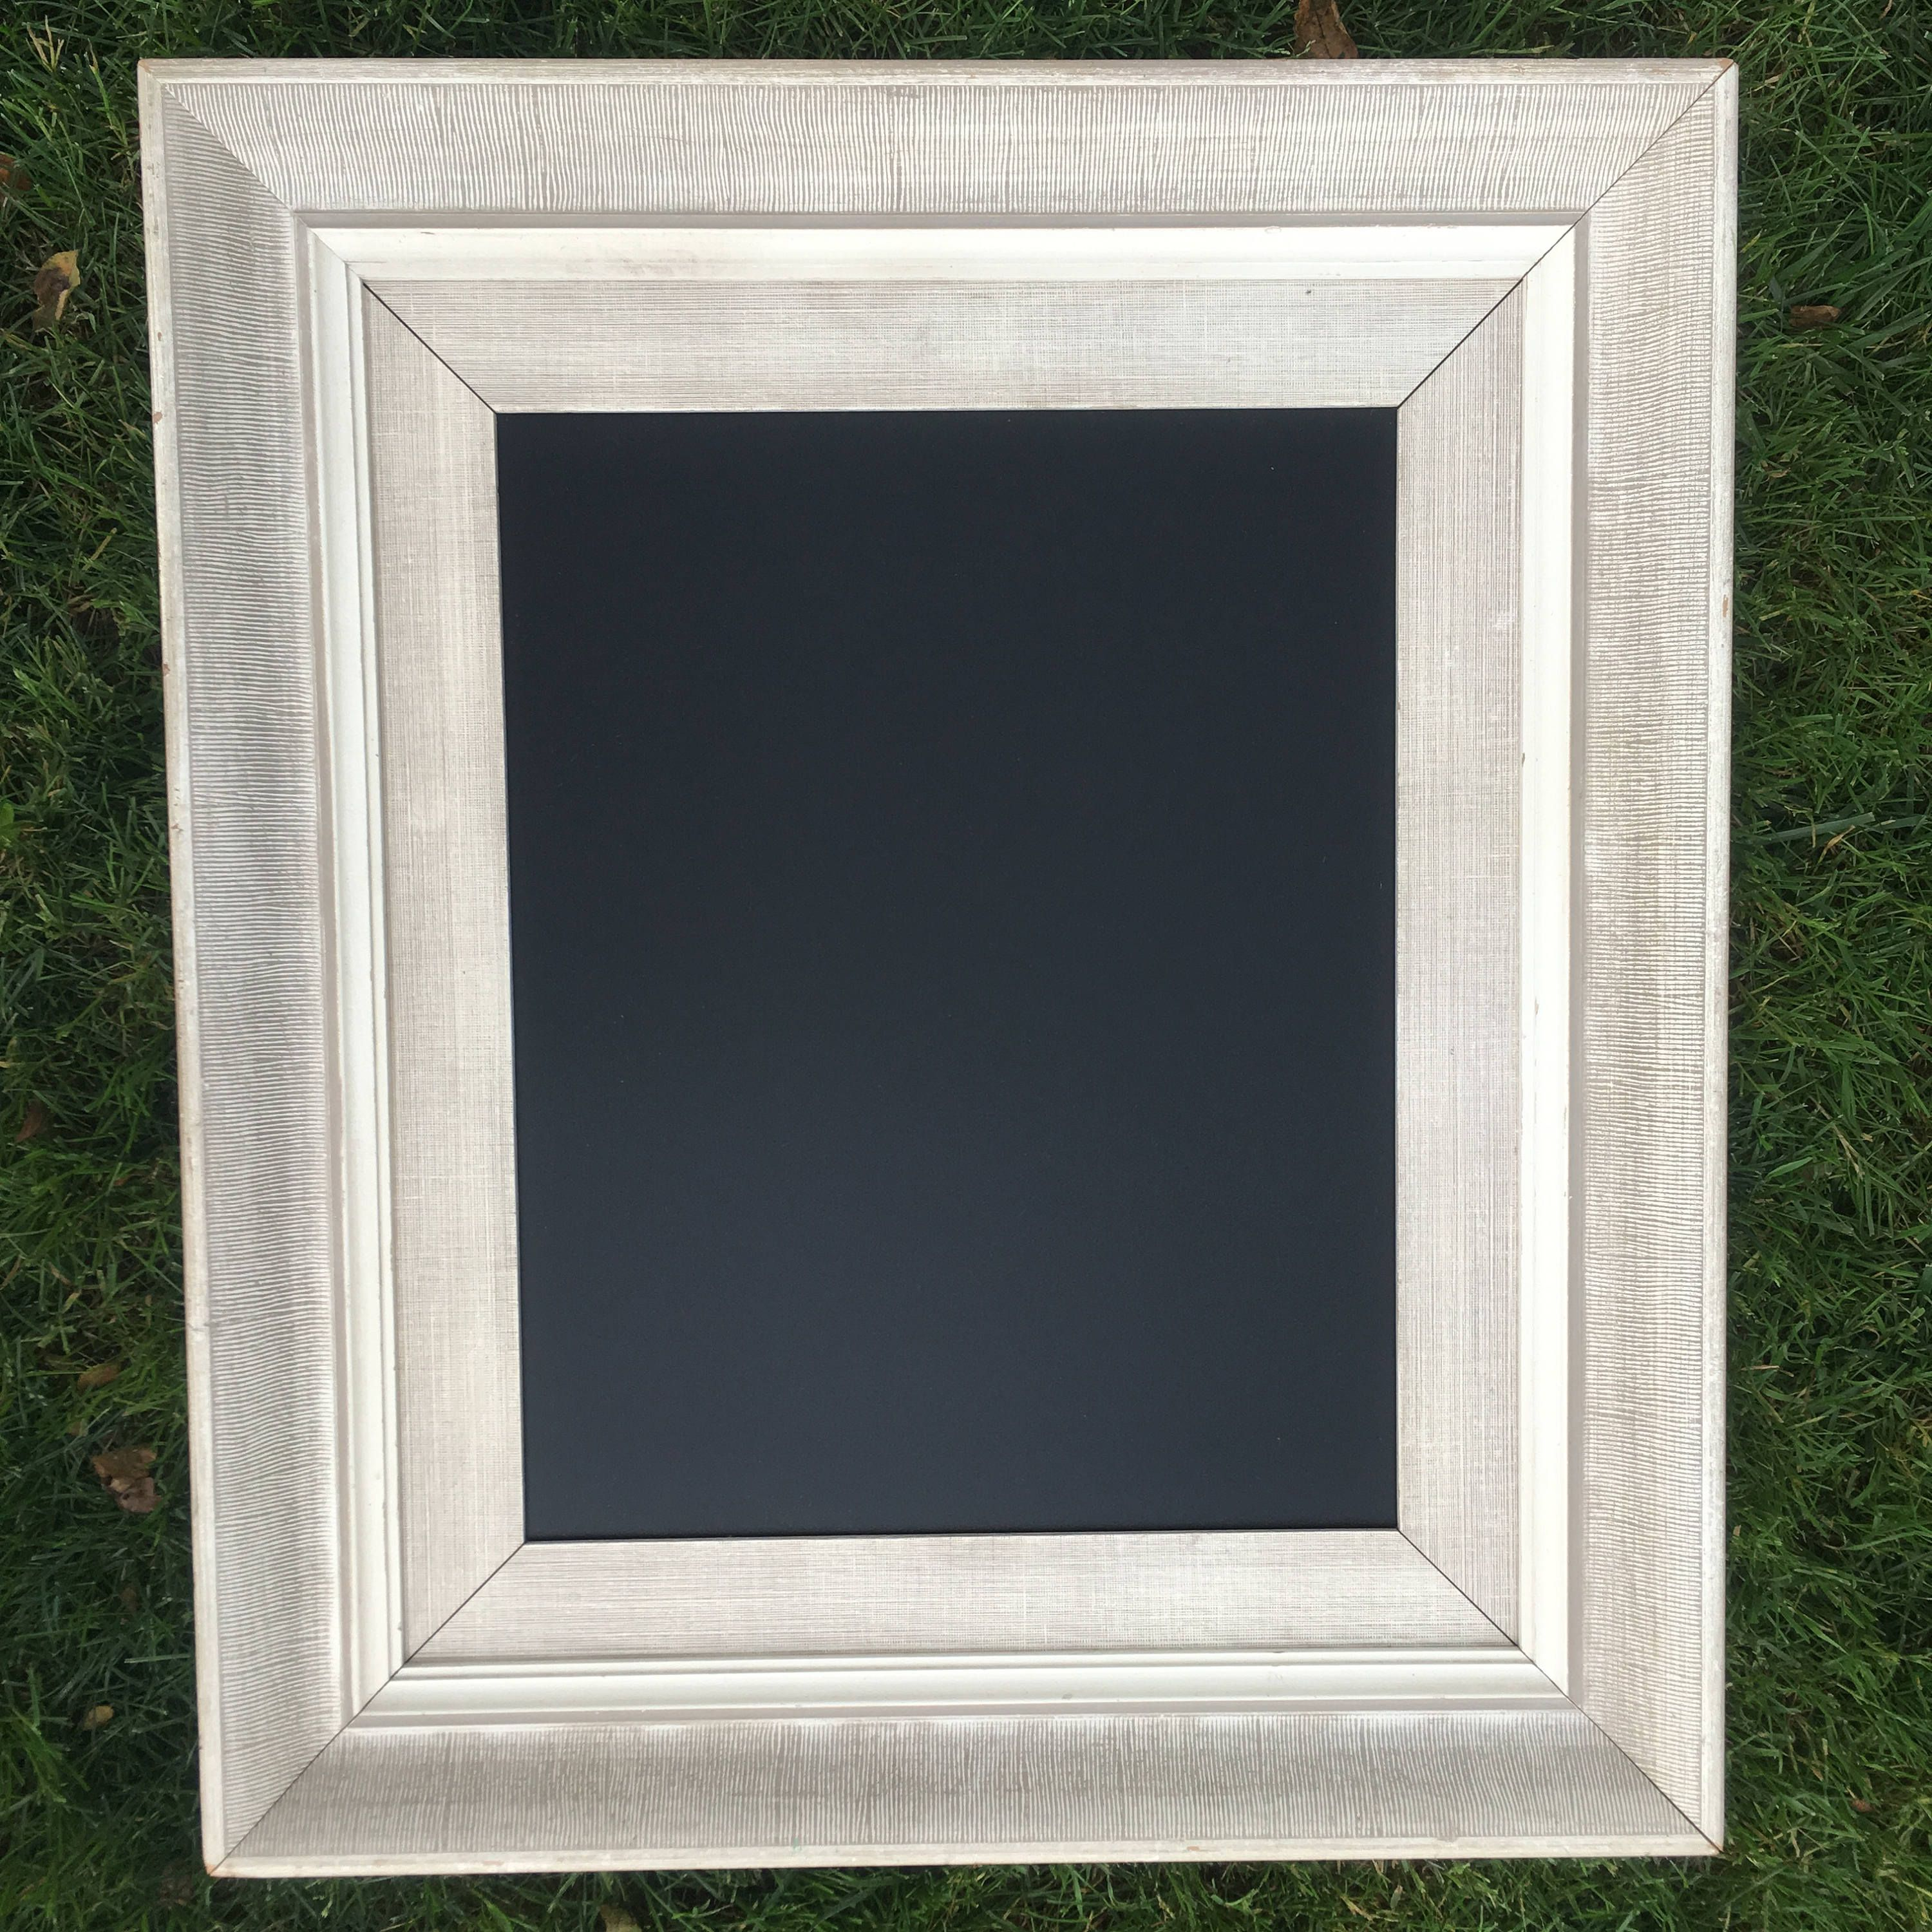 Chalkboard Frames, Chalkboard Paint, Wedding Chalkboards, A Frame, White Weddings,